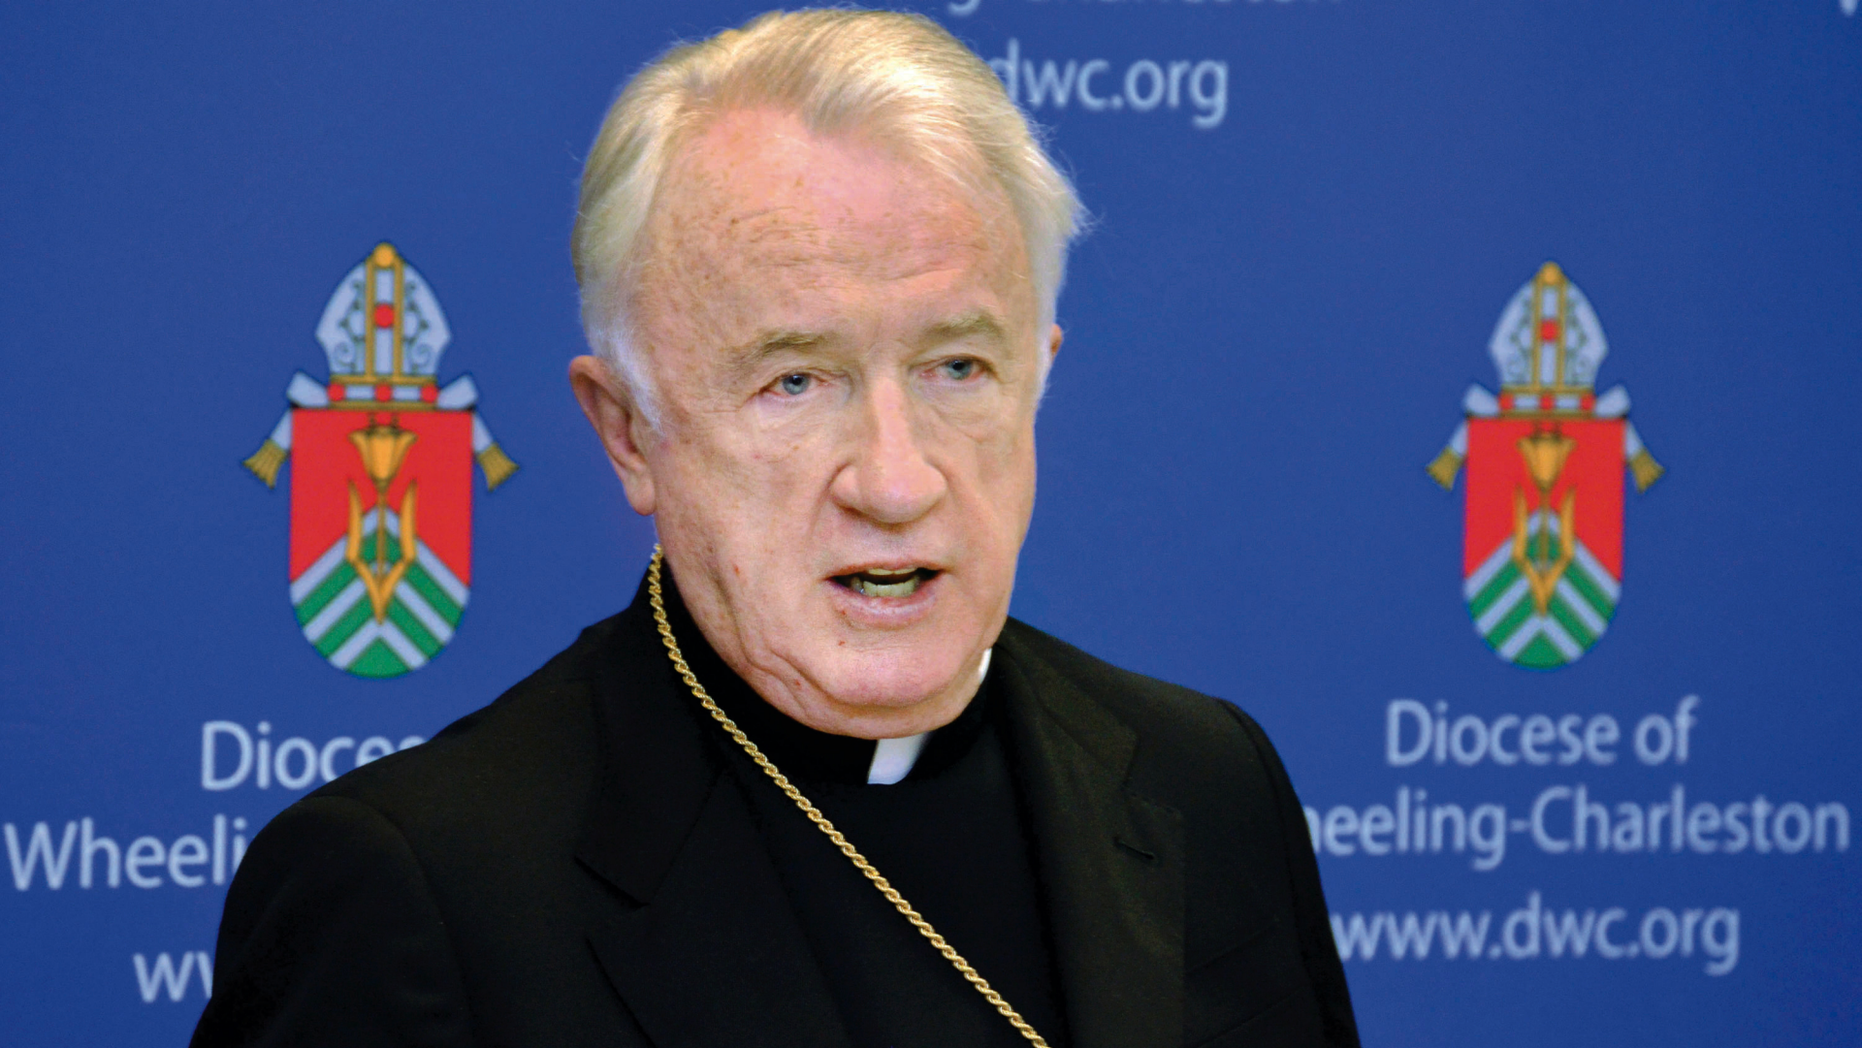 """FILE - A 2015 file photo shows West Virginia Bishop Michael J. Bransfield, then-bishop of the Roman Catholic Diocese of Wheeling-Charleston. In a news conference scheduled for Tuesday, July 23, 2019, West Virginia's Roman Catholic Diocese says it's set to discuss its """"future leadership,"""" 10 months after the resignation of Bransfield. (Scott McCloskey/The Intelligencer via AP, File)"""